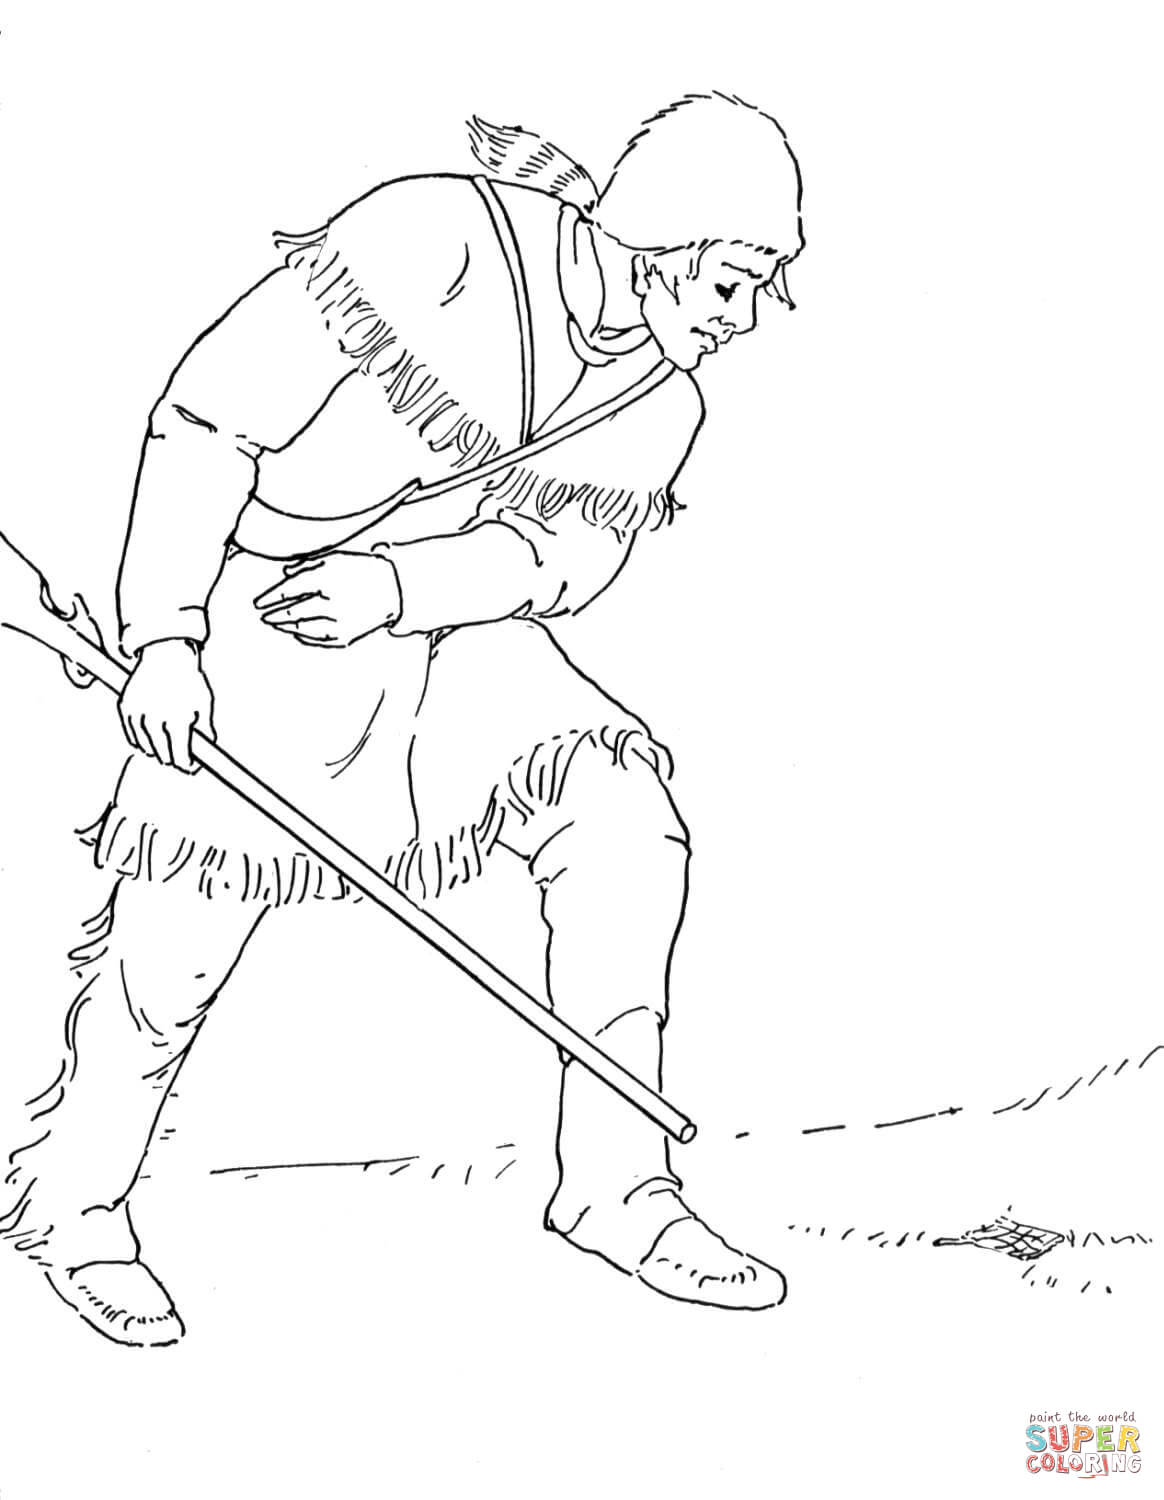 Sacagawea Coloring Page Collection Of Sacajawea Coloring Pages Hellokids to Print